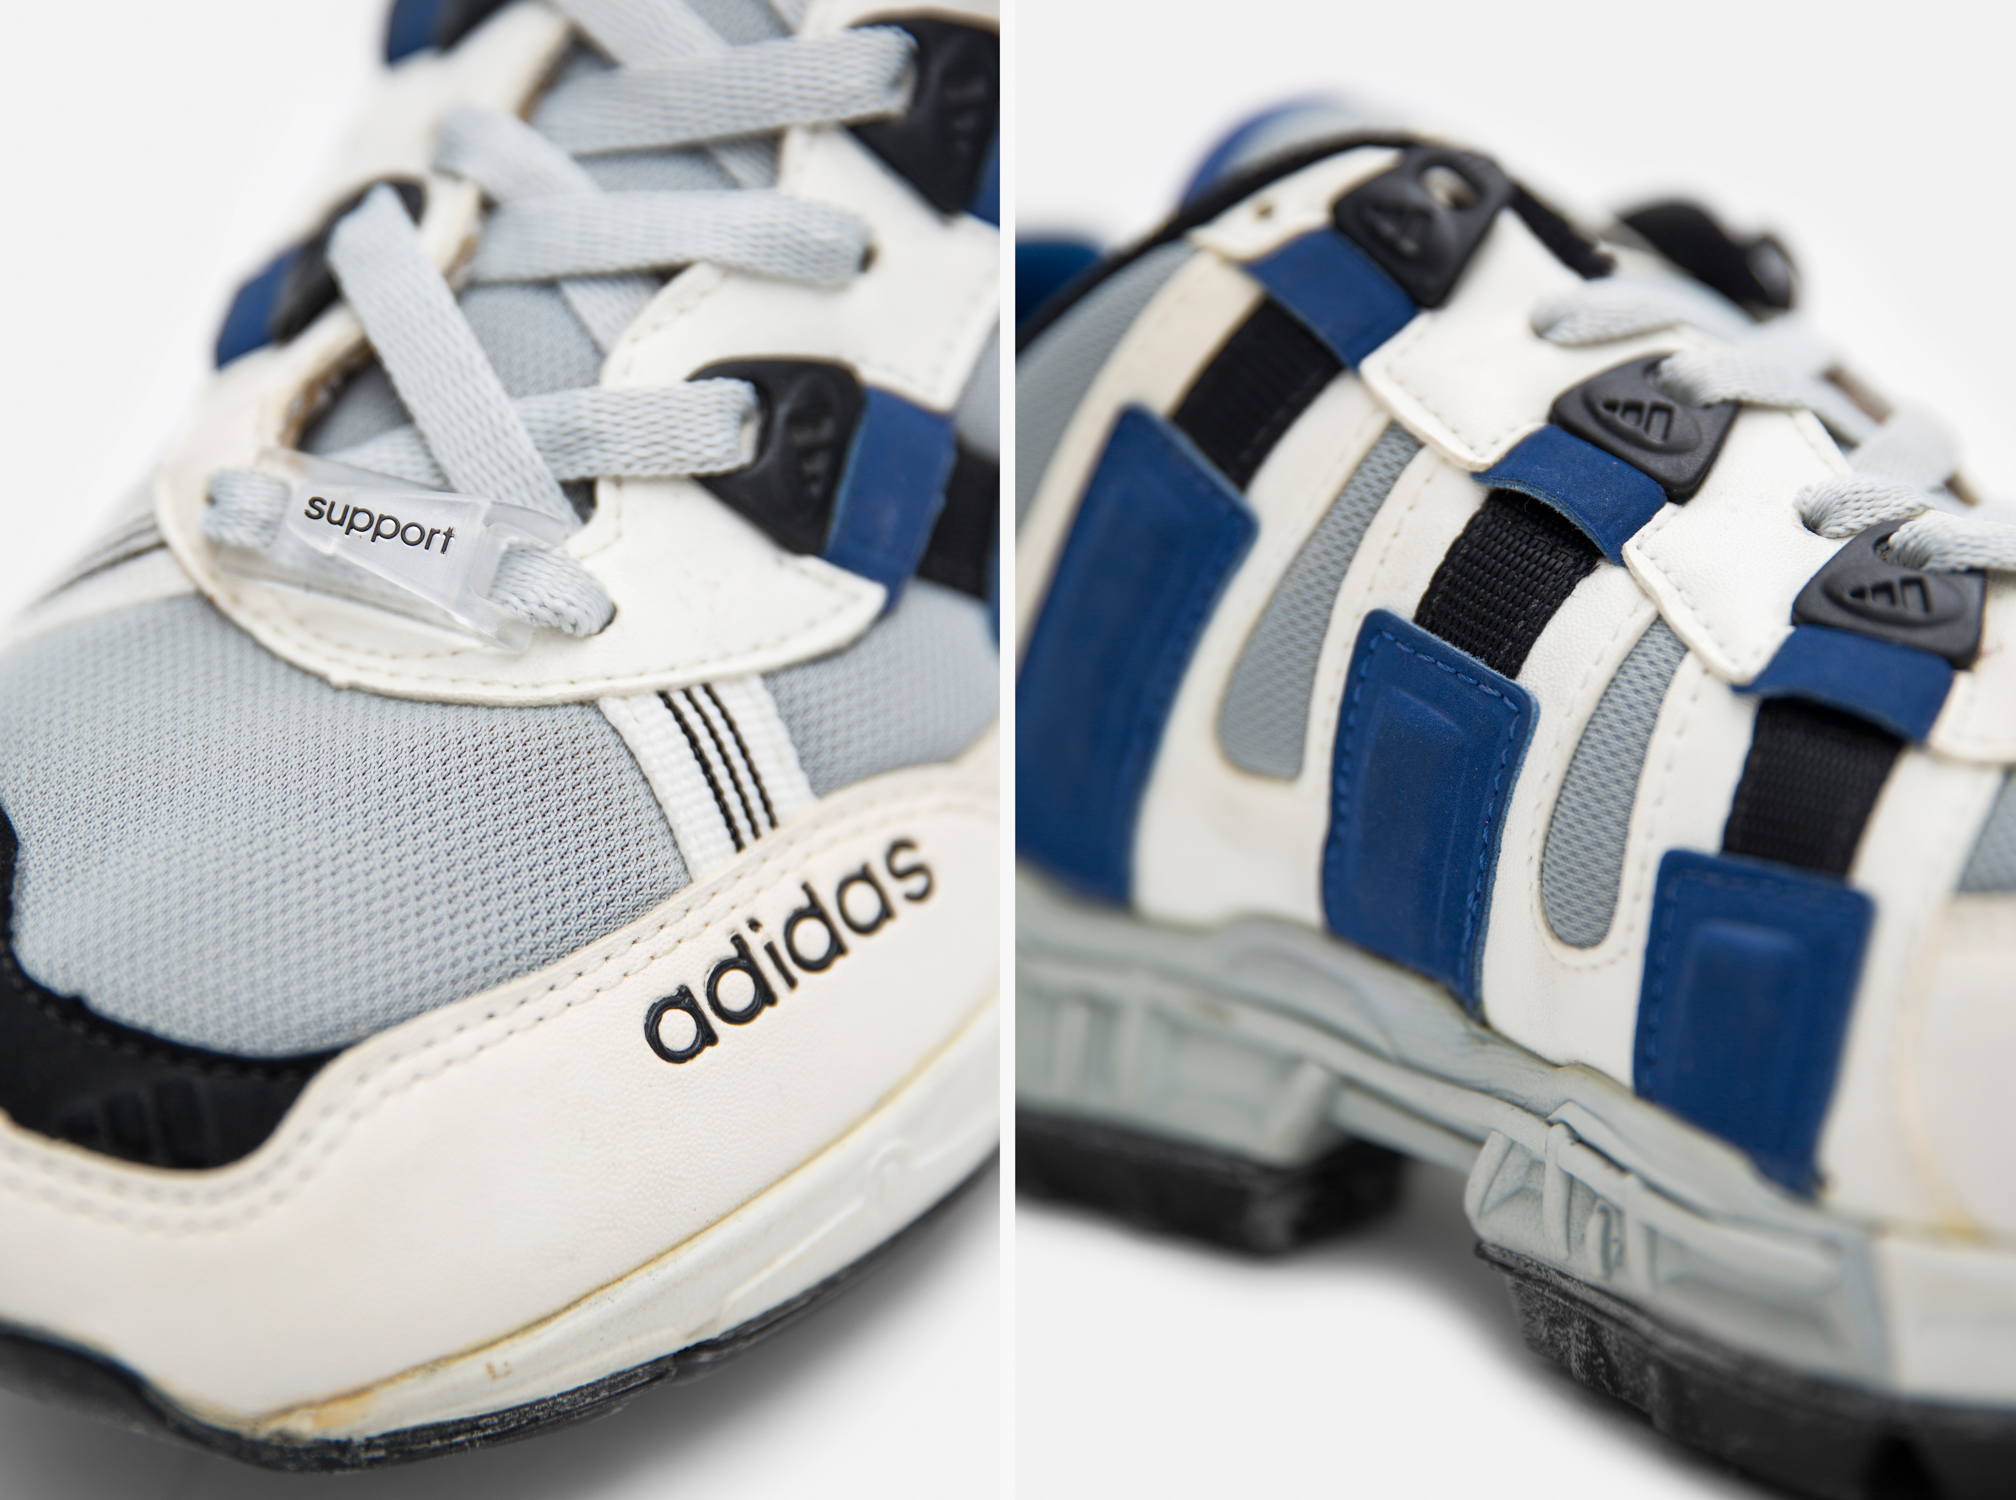 adidas_EQT_Equipment_lock_up_size_hq_exclusive-13